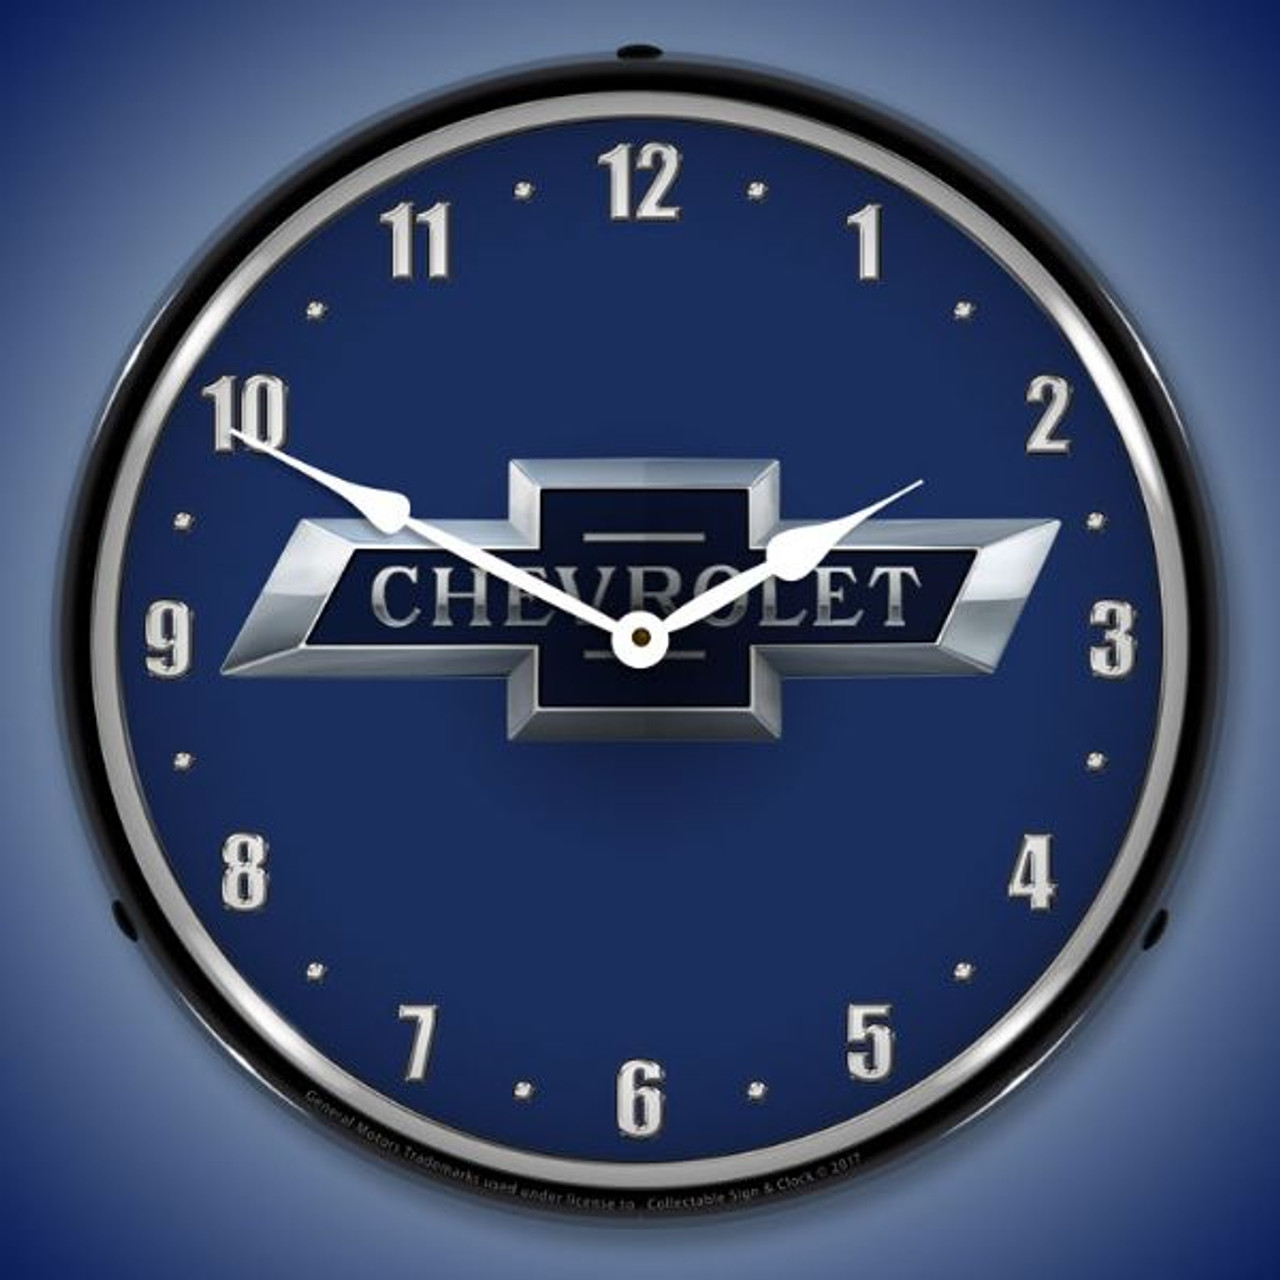 Chevrolet Bowtie 100th Anniversary Lighted Wall Clock 14 x 14 Inches